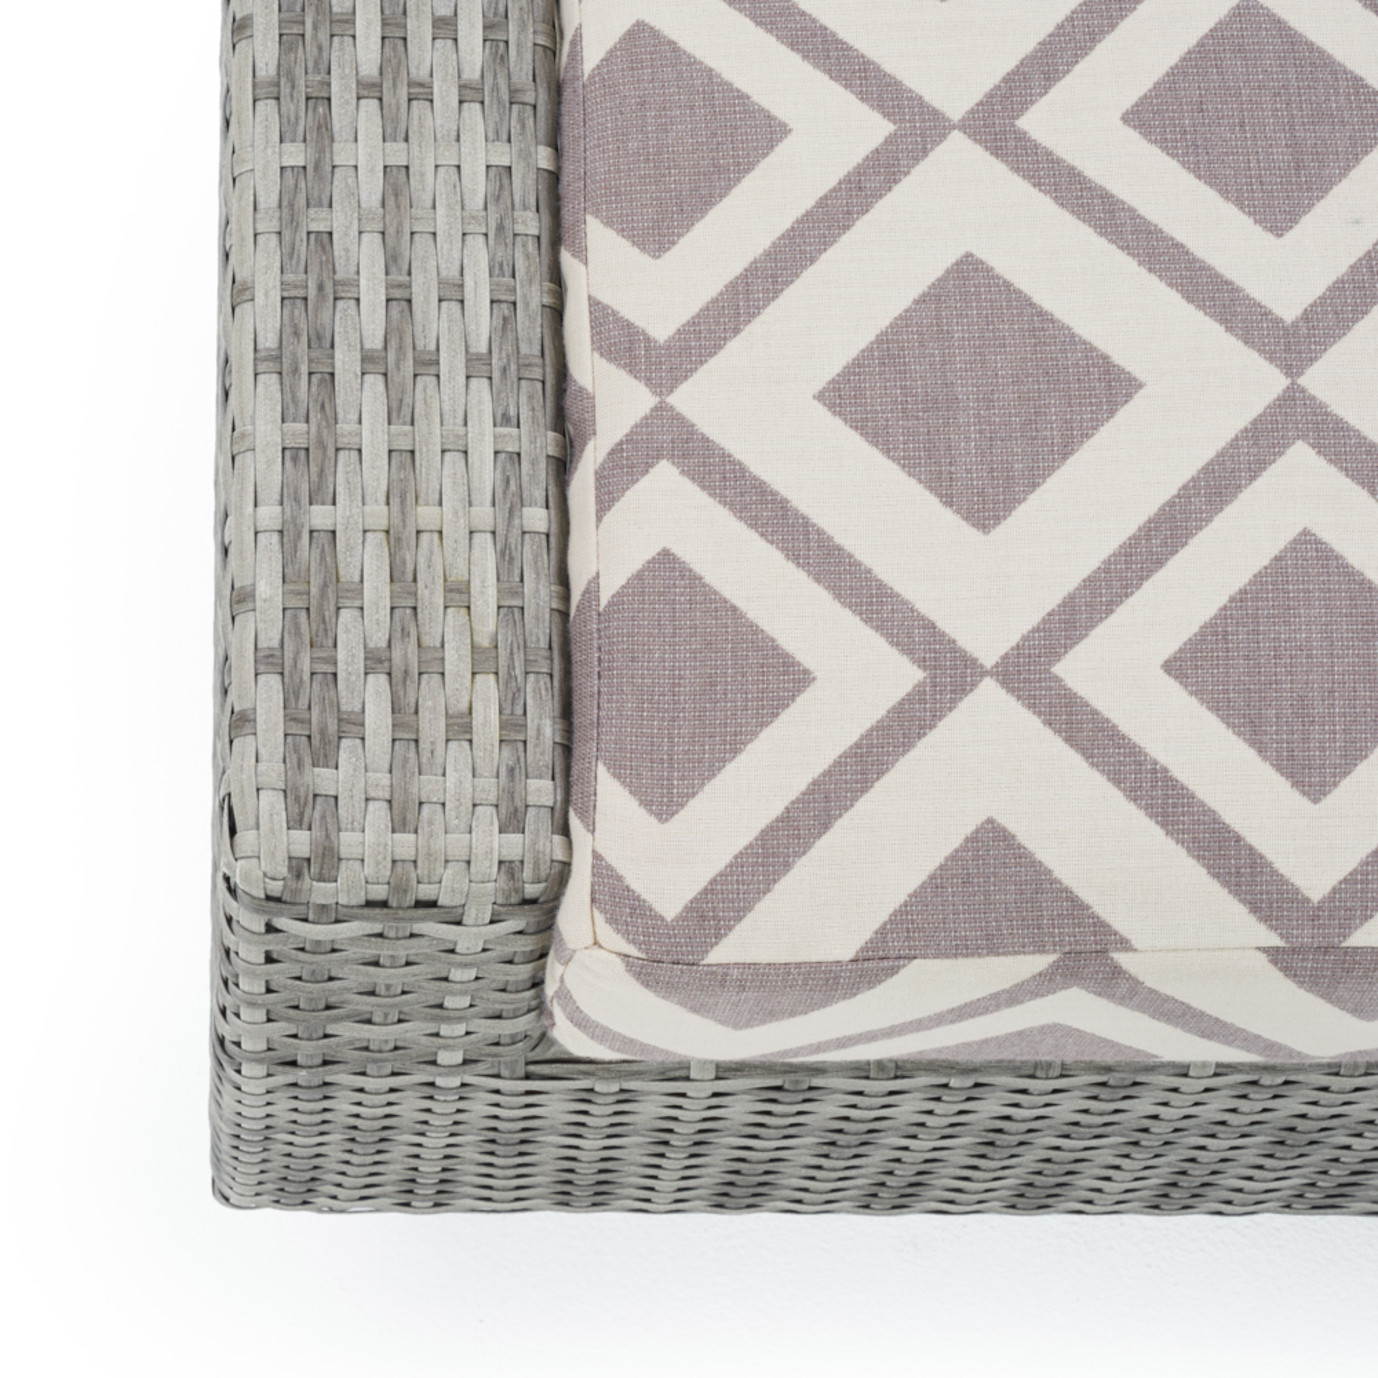 Cannes™ 6pc Love & Club Seating Set - Wisteria Lavender